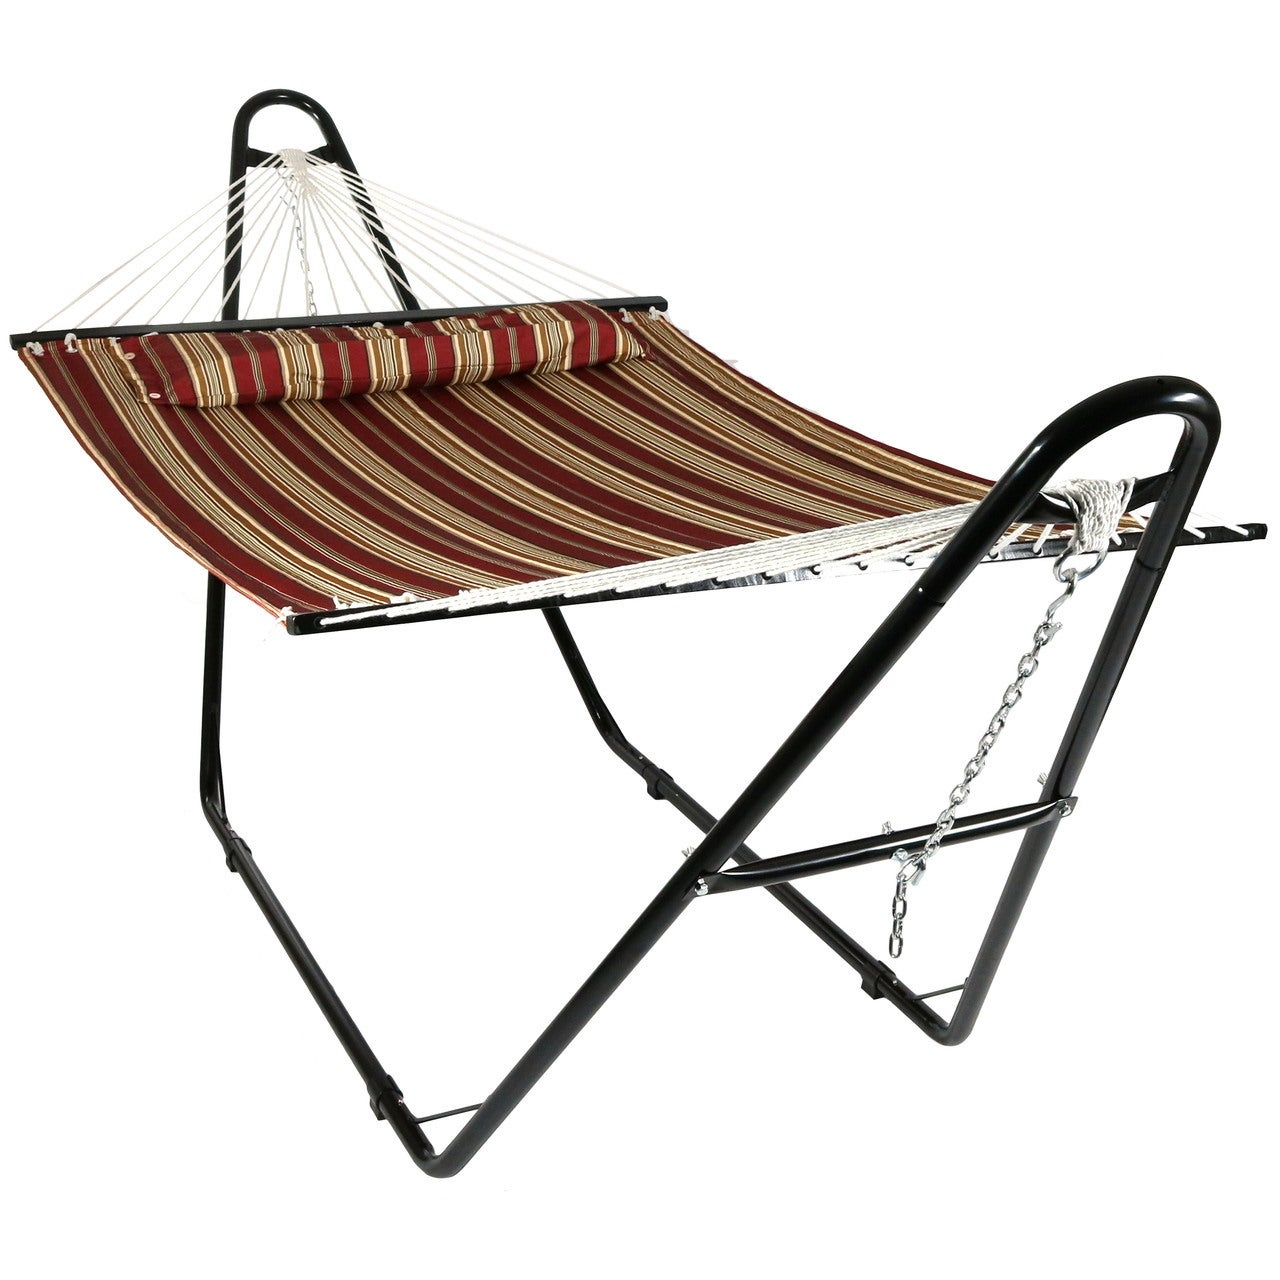 Sunnydaze Quilted Double Fabric 2-Person Hammock with Multi-Use Universal Stand - Thumbnail 0